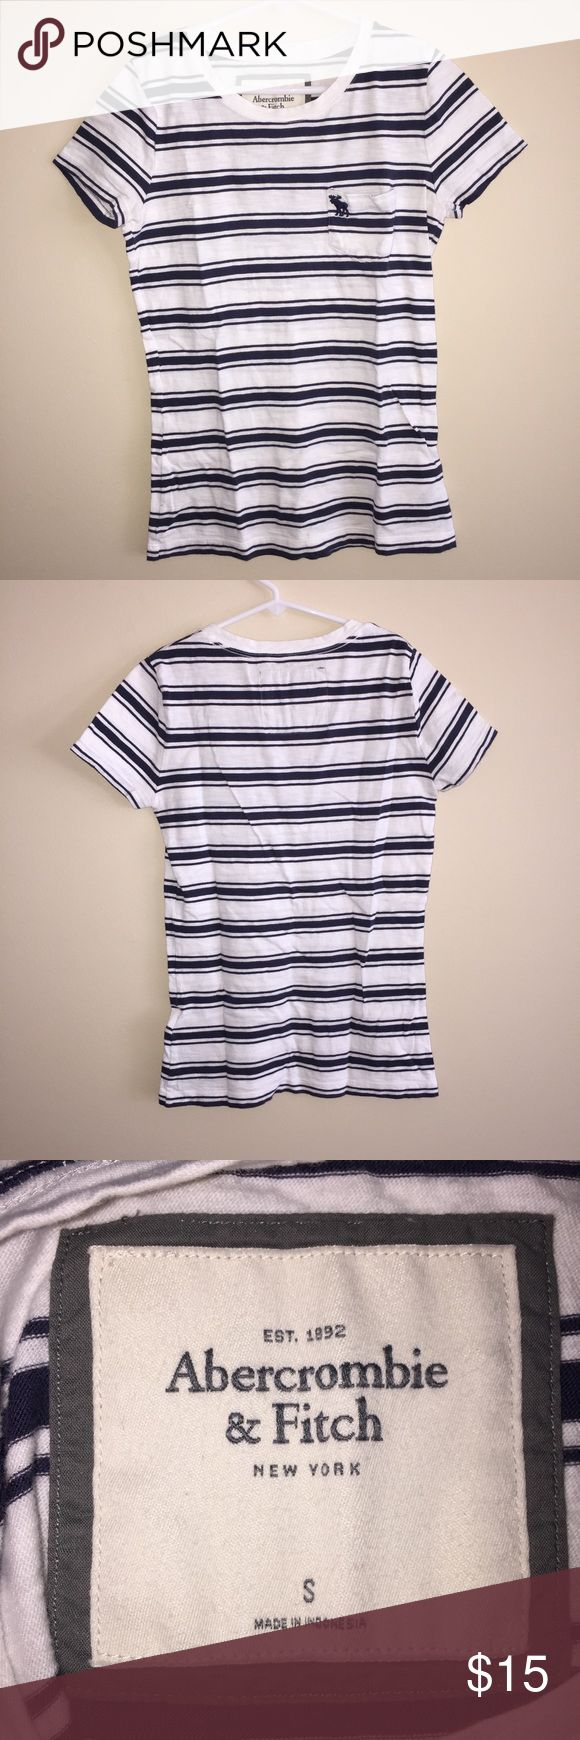 Abercrombie and Fitch Navy&White Striped T-Shirt Abercrombie and Fitch Navy and White Striped short sleeve T-Shirt Abercrombie & Fitch Tops Tees - Short Sleeve